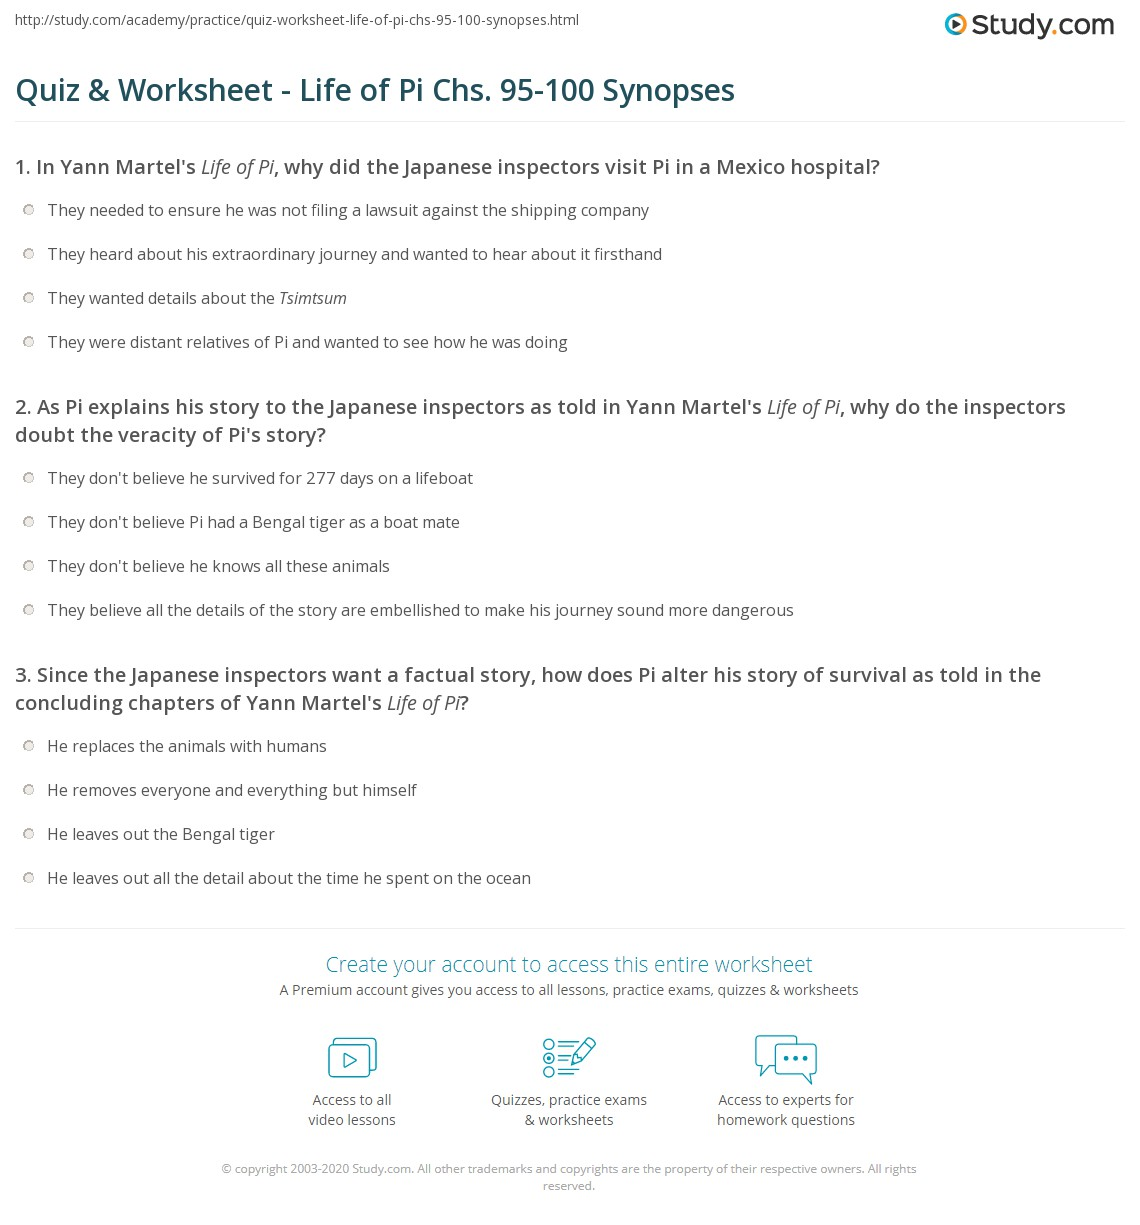 Quiz worksheet life of pi chs 95 100 synopses for Life of pi chapter summary